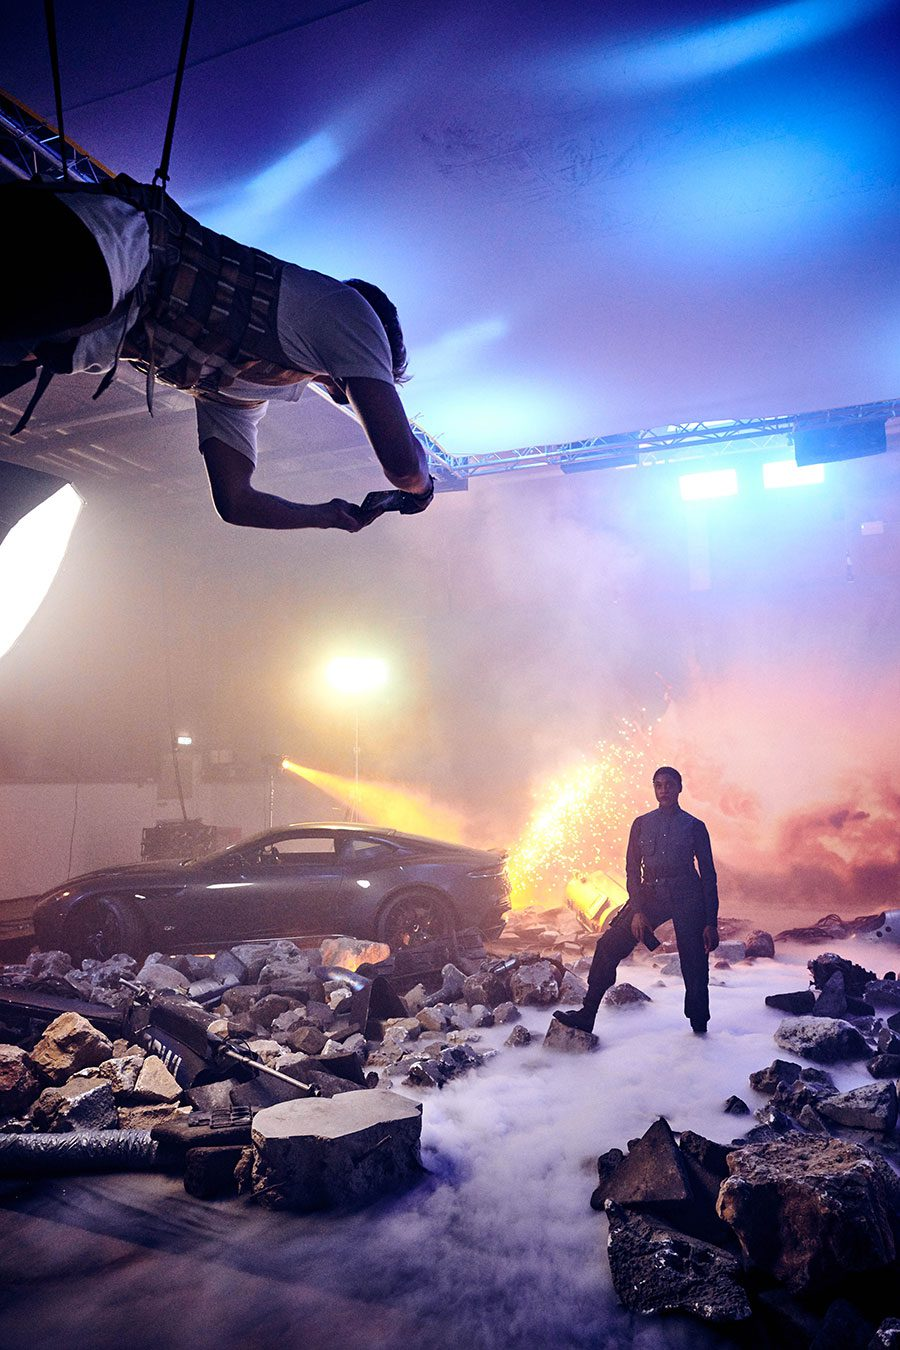 James-Bond-NTTD-behind-the-scenes-with-Nokia-8.3-5G